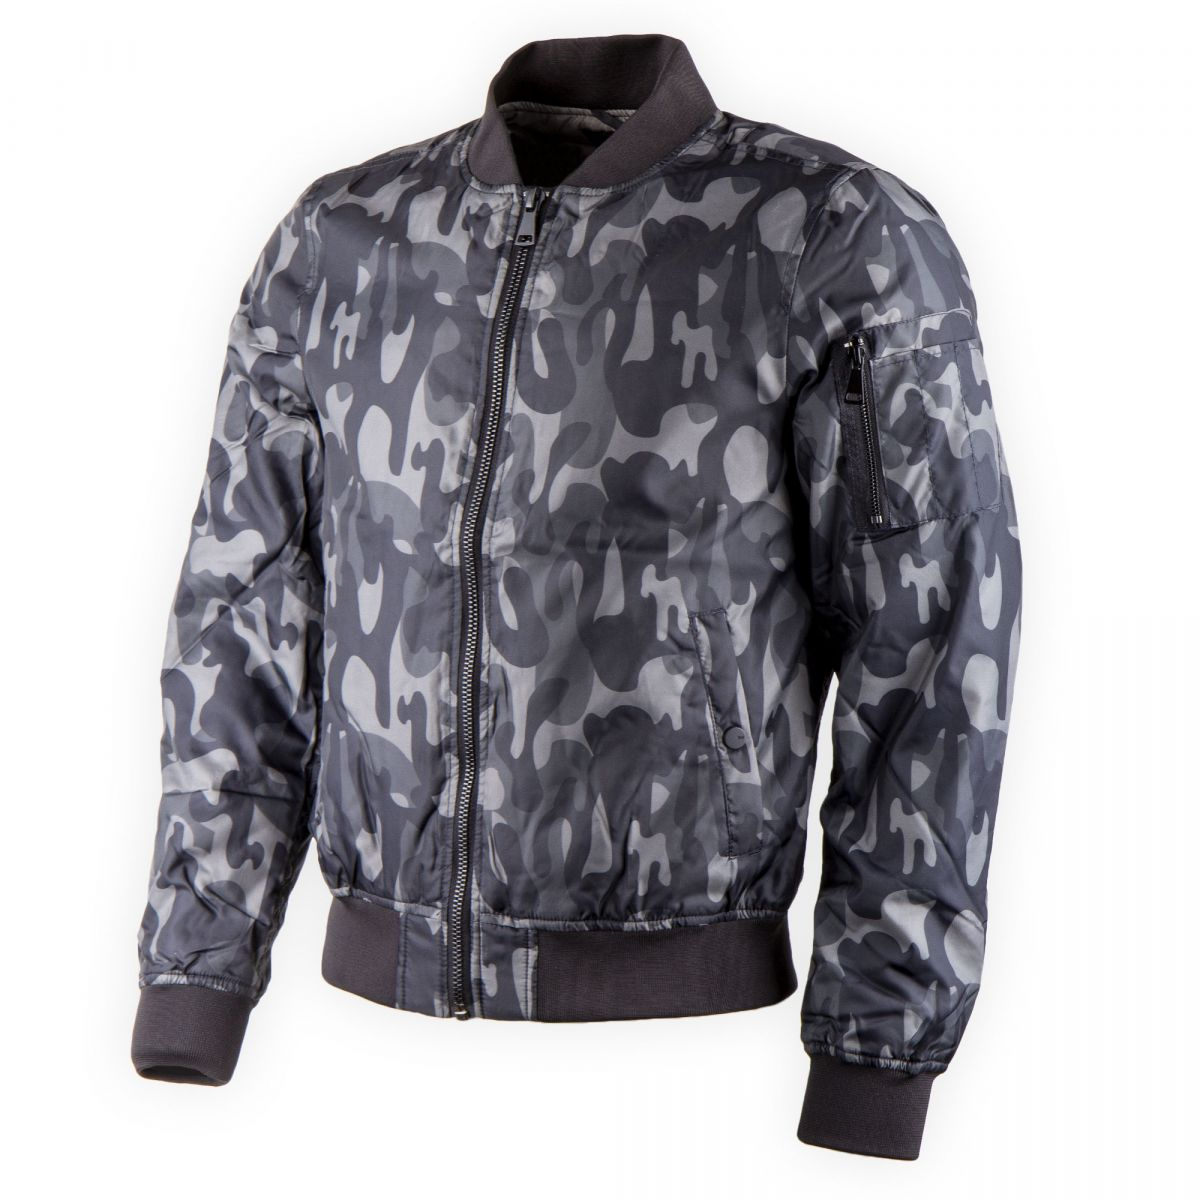 ff8c16a7957 blouson-bomber-imprime-camouflage-pkw1713-homme-best-mountain.jpg